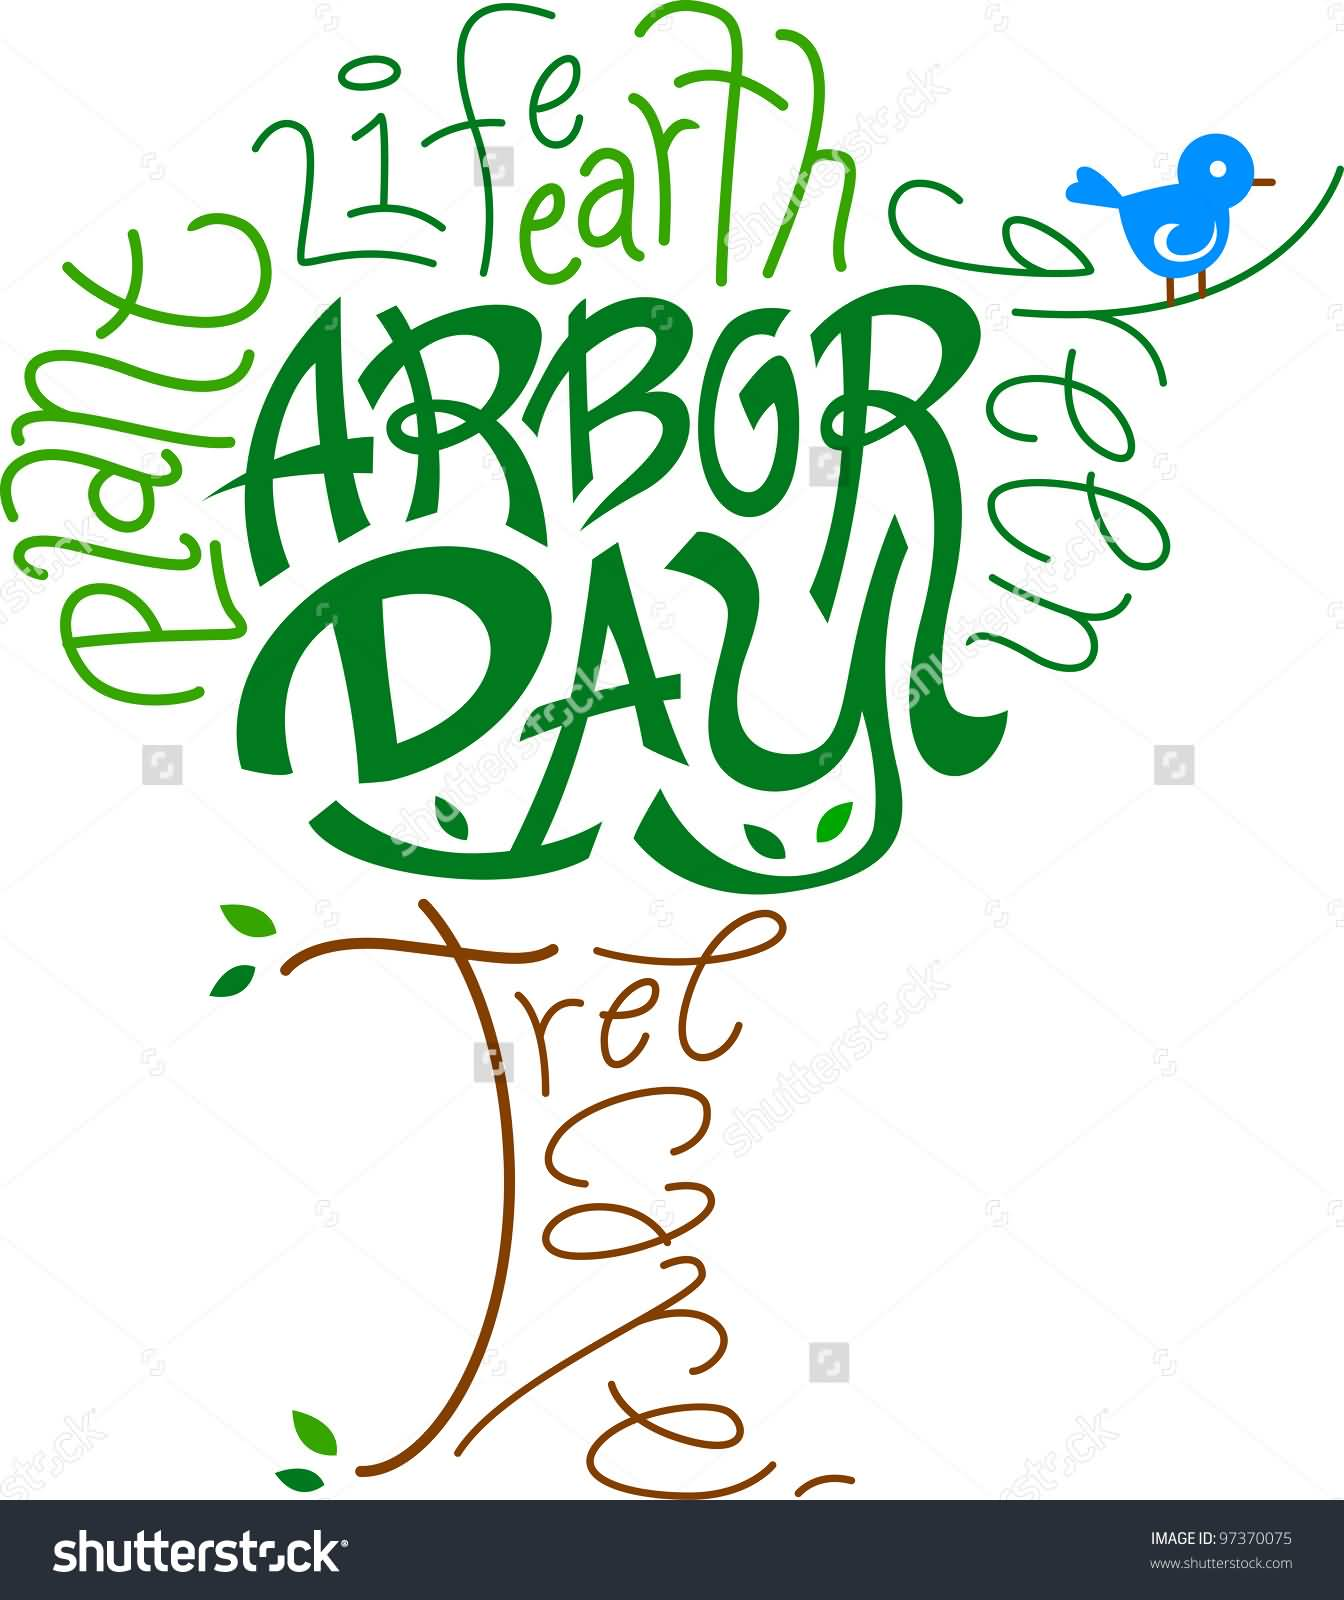 13-Arbor Day Wishes